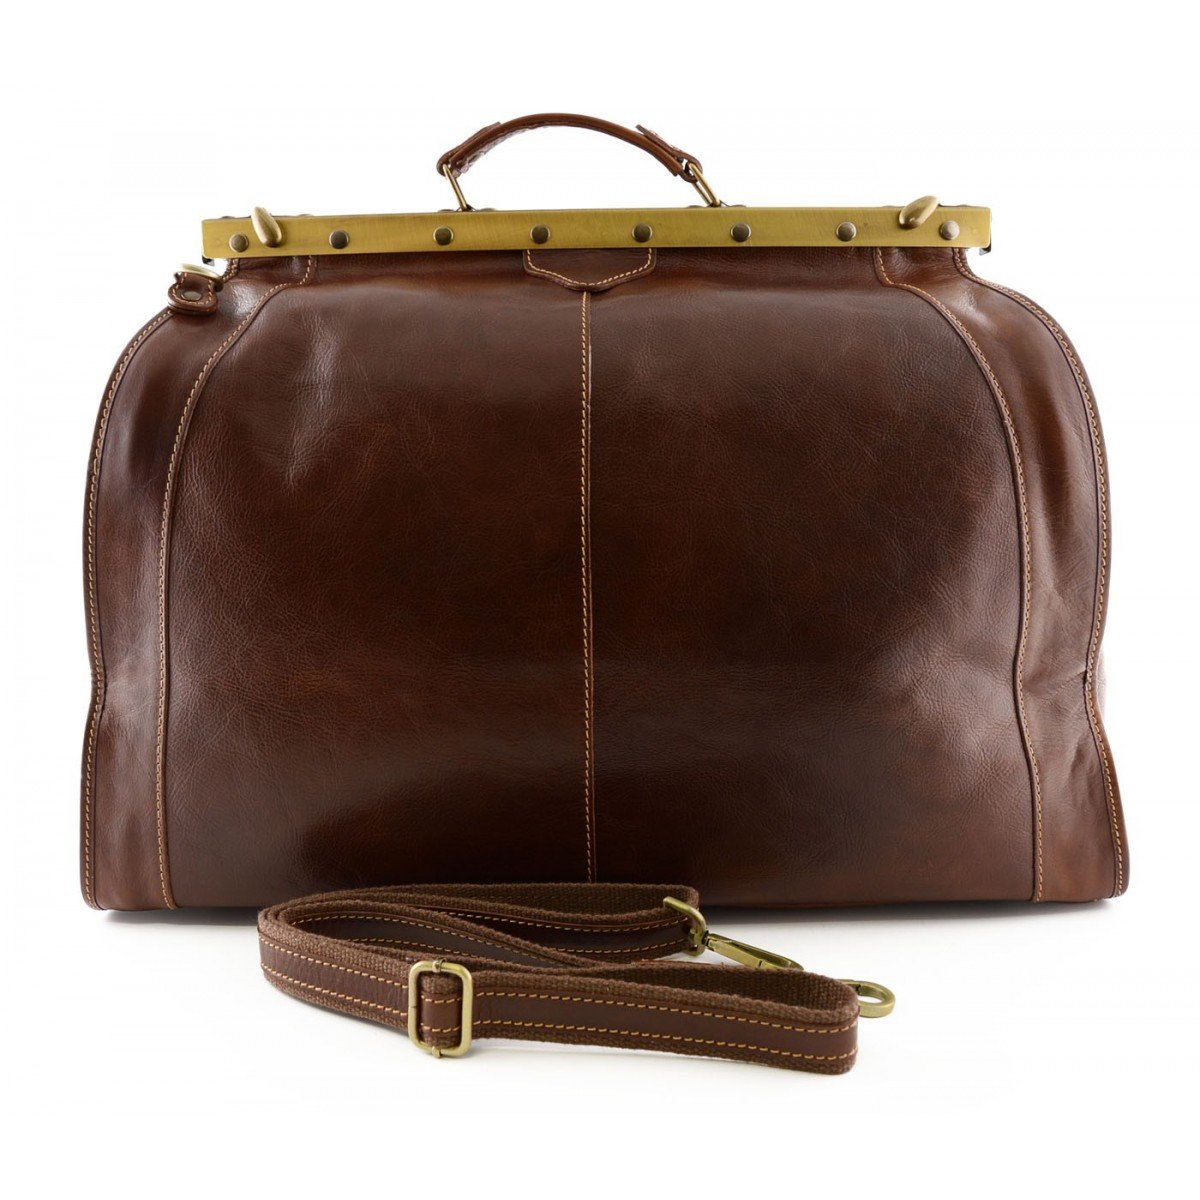 Made In Italy Genuine Leather Travel Bag With Metal Closure Color Brown - Travel Bag B017IBKOF4